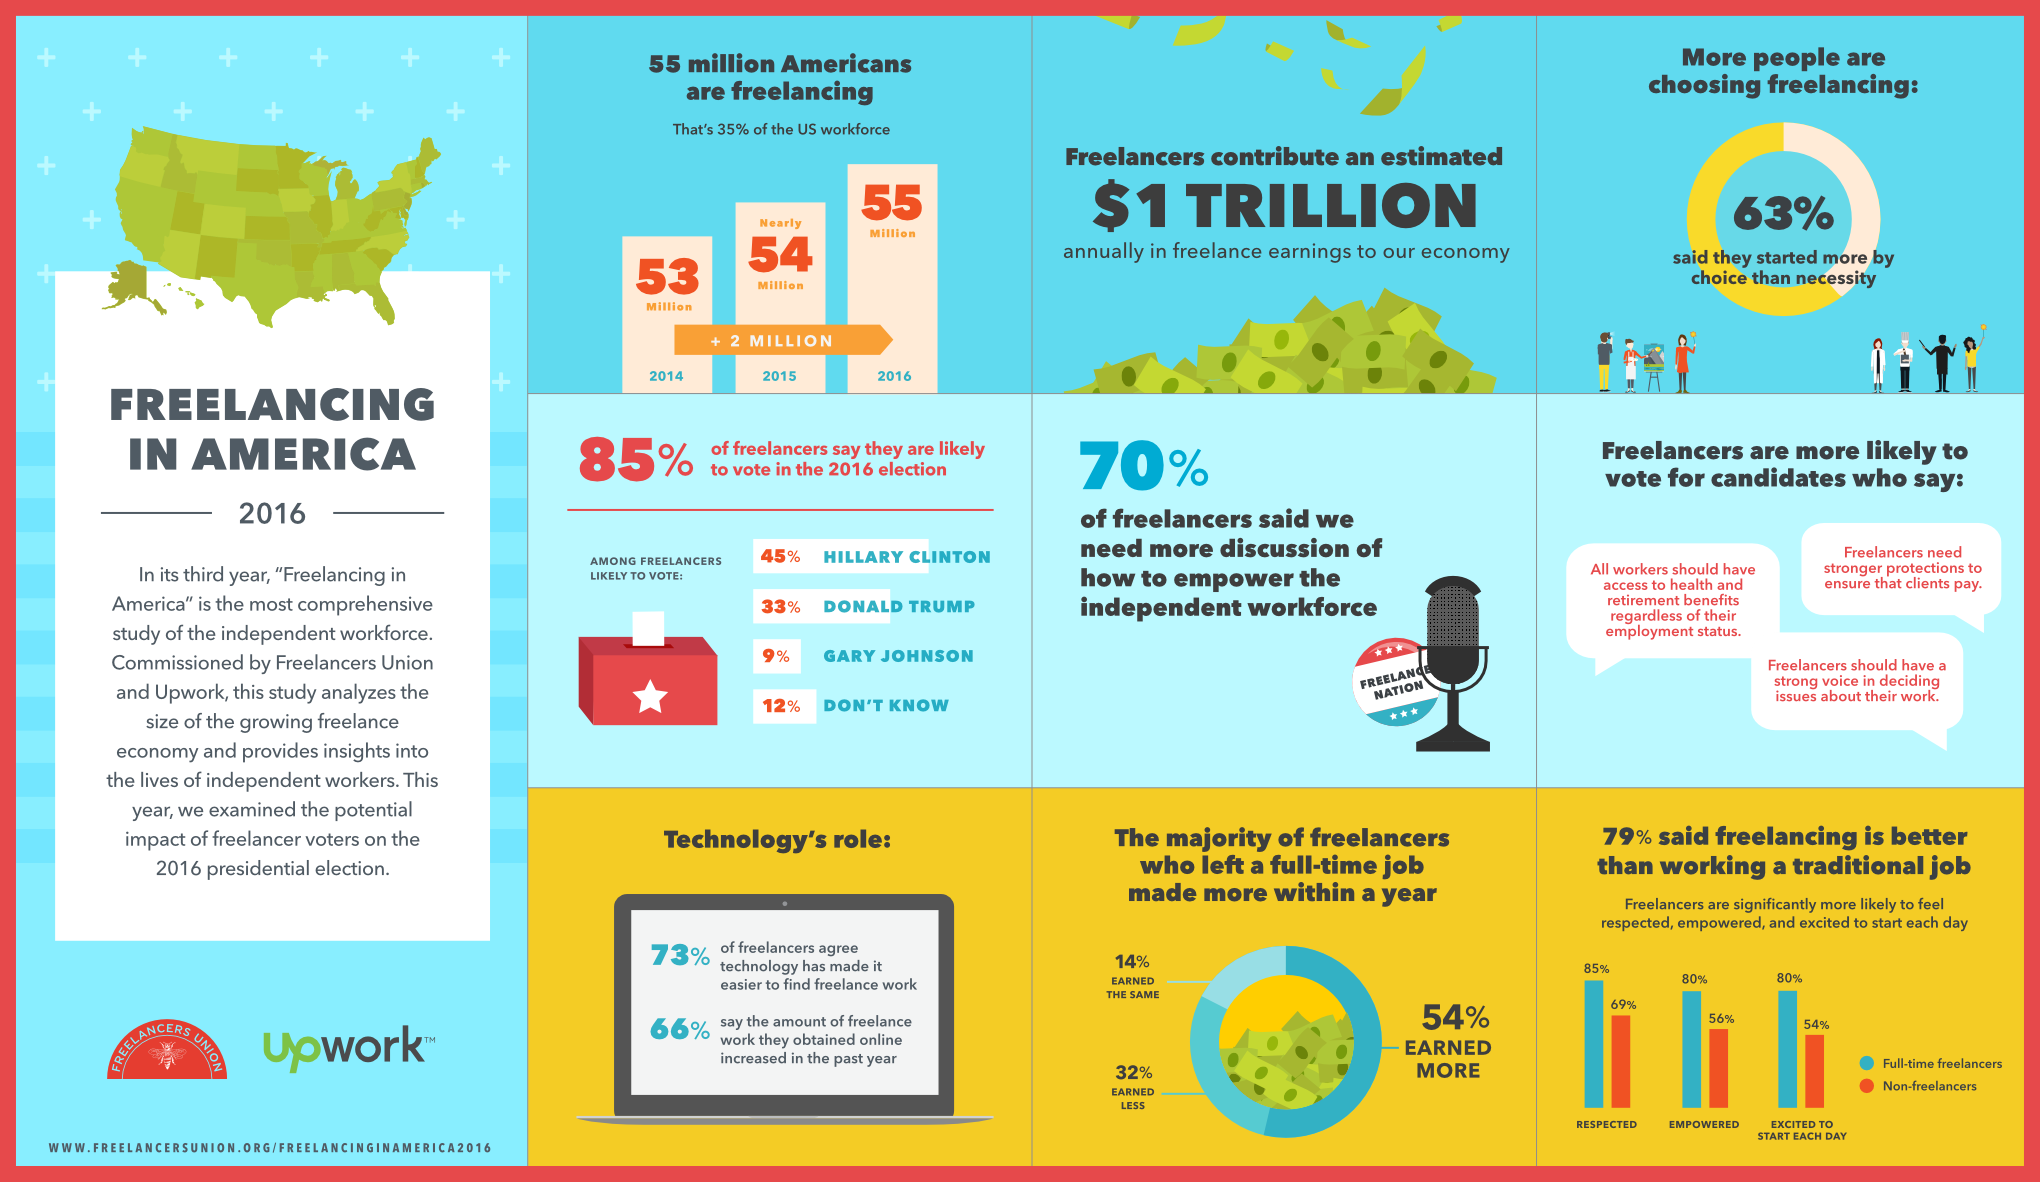 freelancing-in-america-usa-infographic-2016-freelance-chiffres-cles-statistiques-amerique